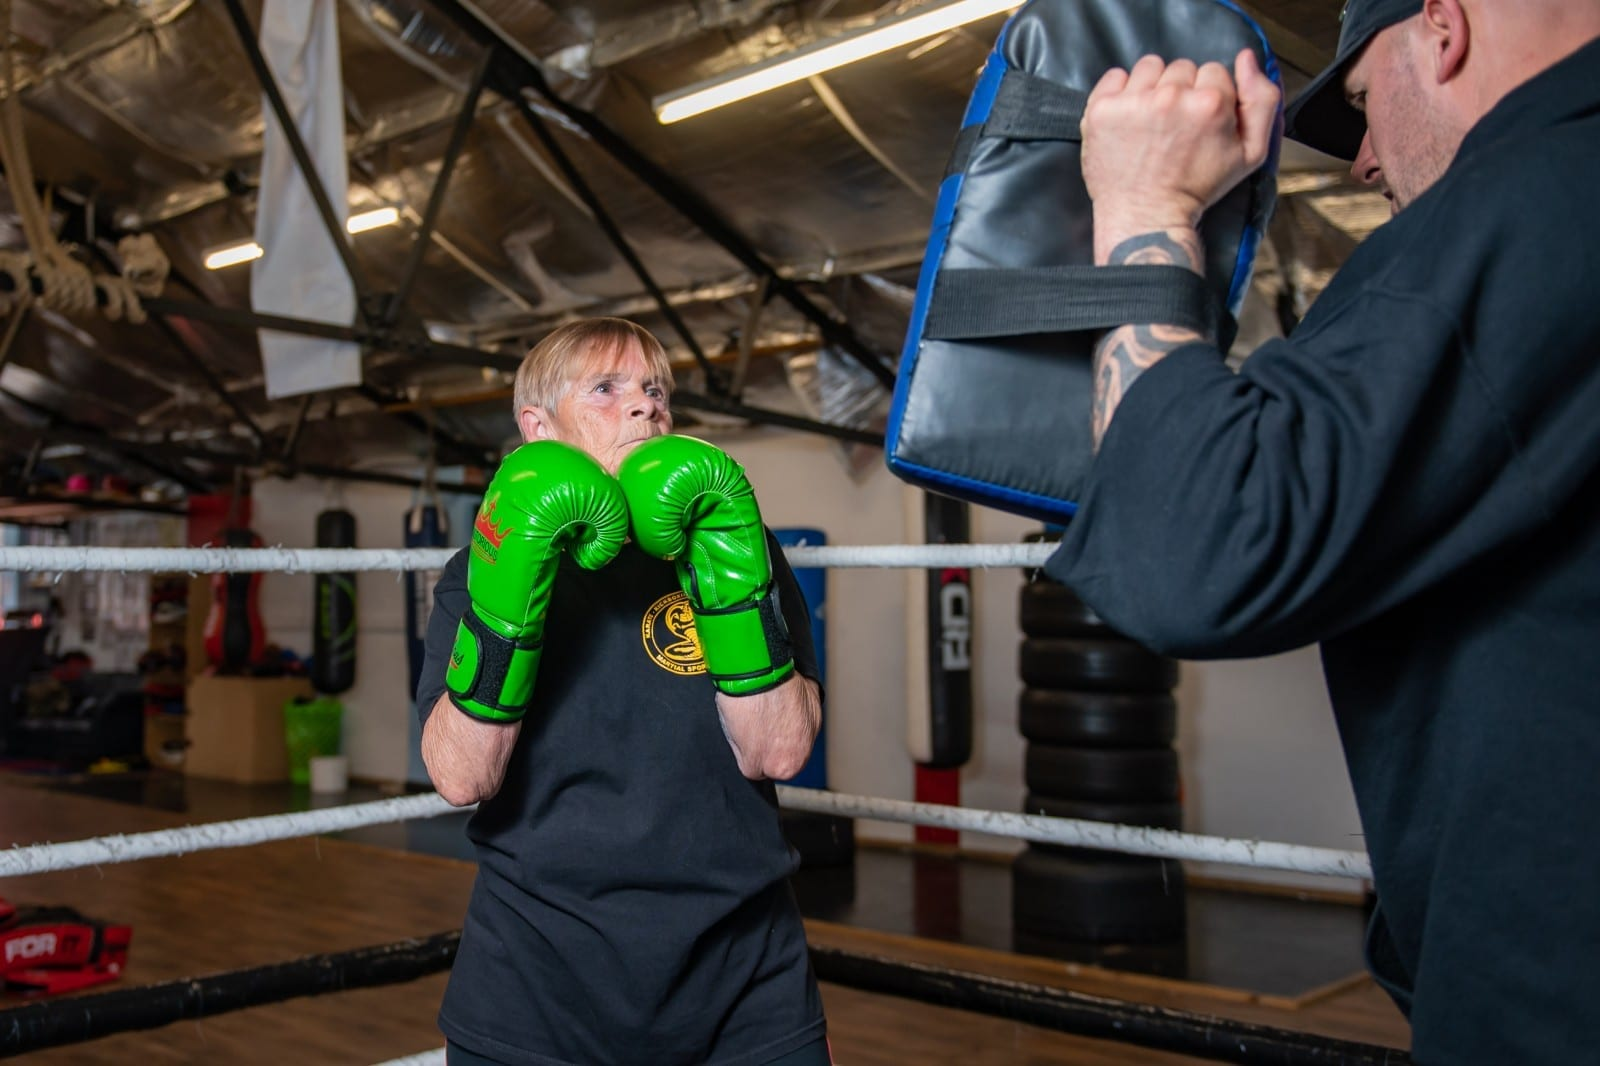 Britain's Oldest Female Kickboxer Nicknamed 'The Beast' Training For First Fight Aged 76